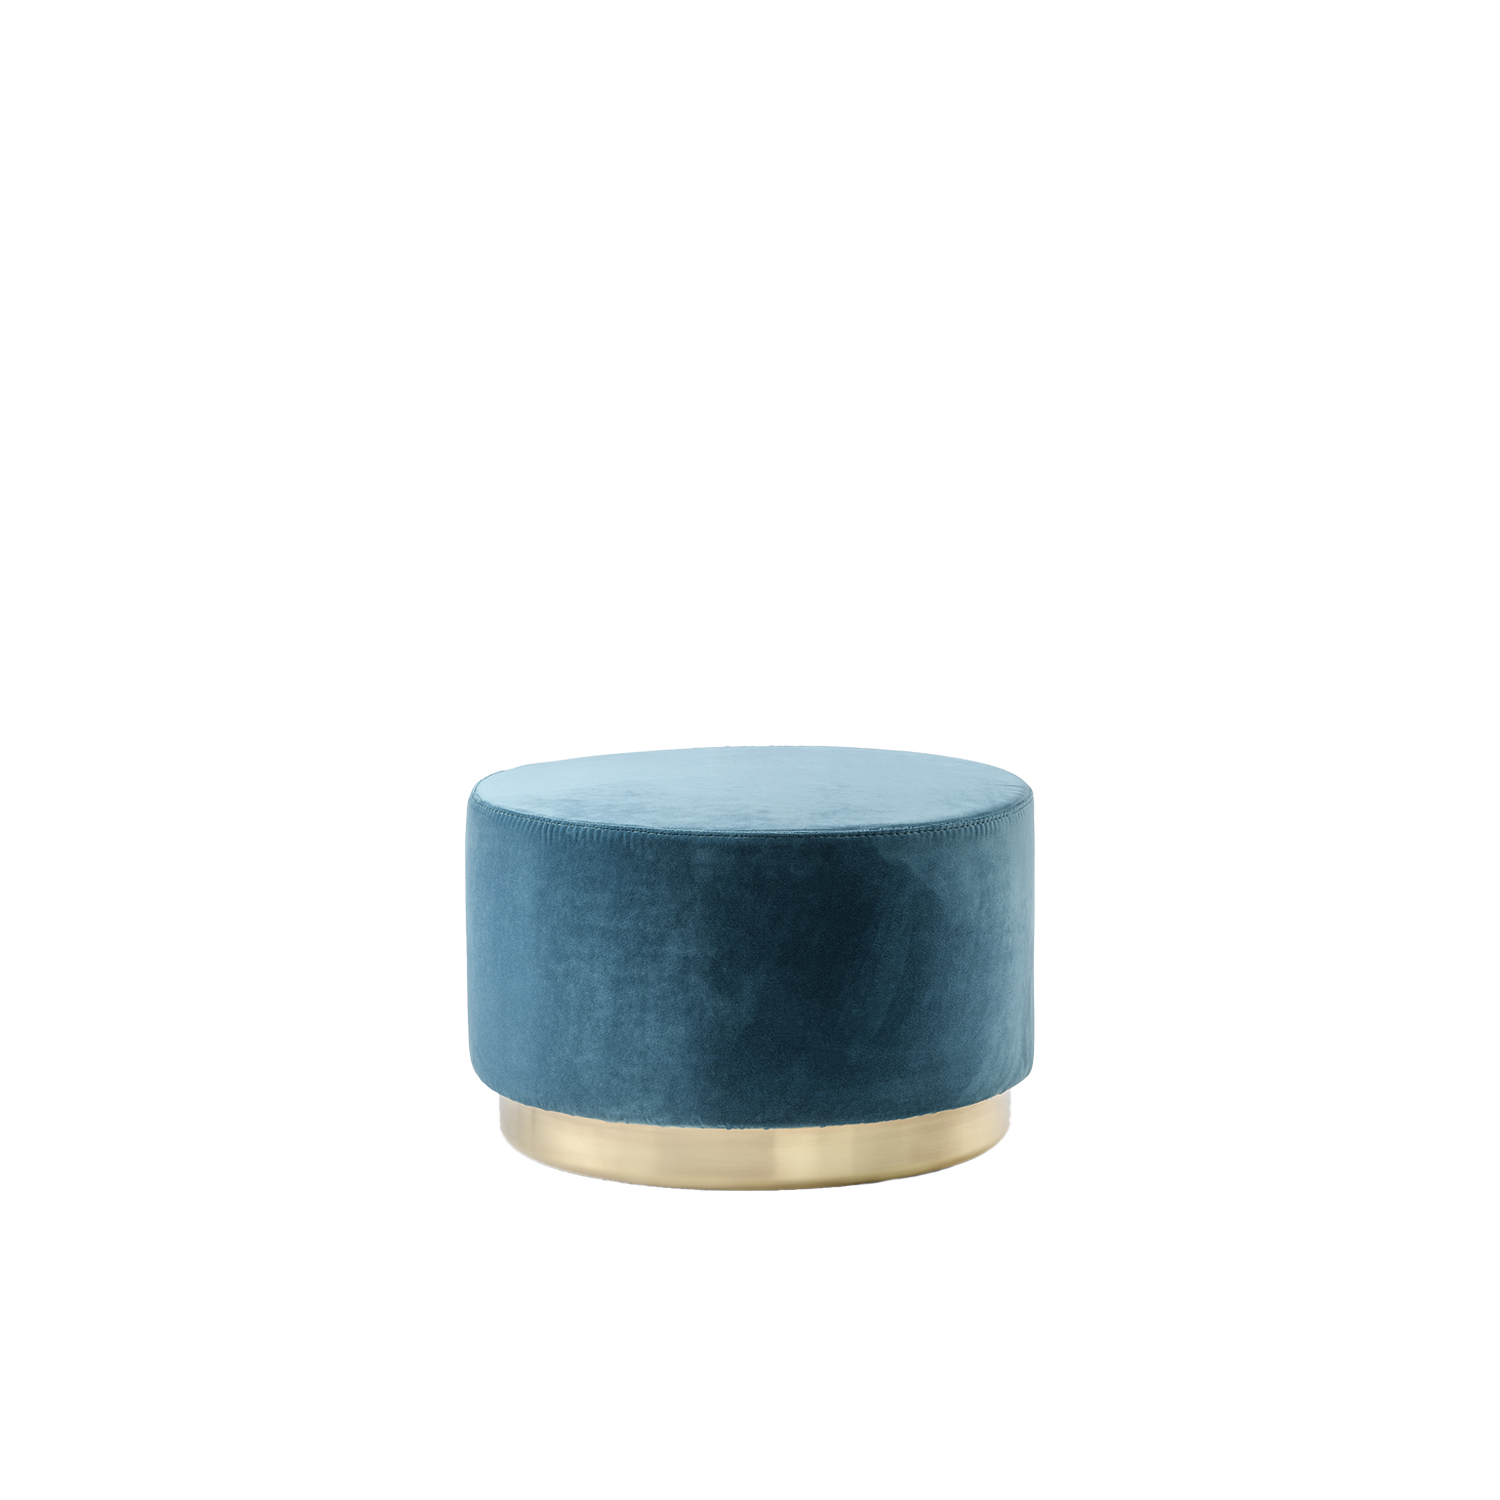 Wow 326 Round Pouf - Pouf that gives a casual and ironic touch to the contract and domestic environments. With a round shape of Ø 650mm, Wow is upholstered in polyurethane injected foam and has a steel base. | Matter of Stuff